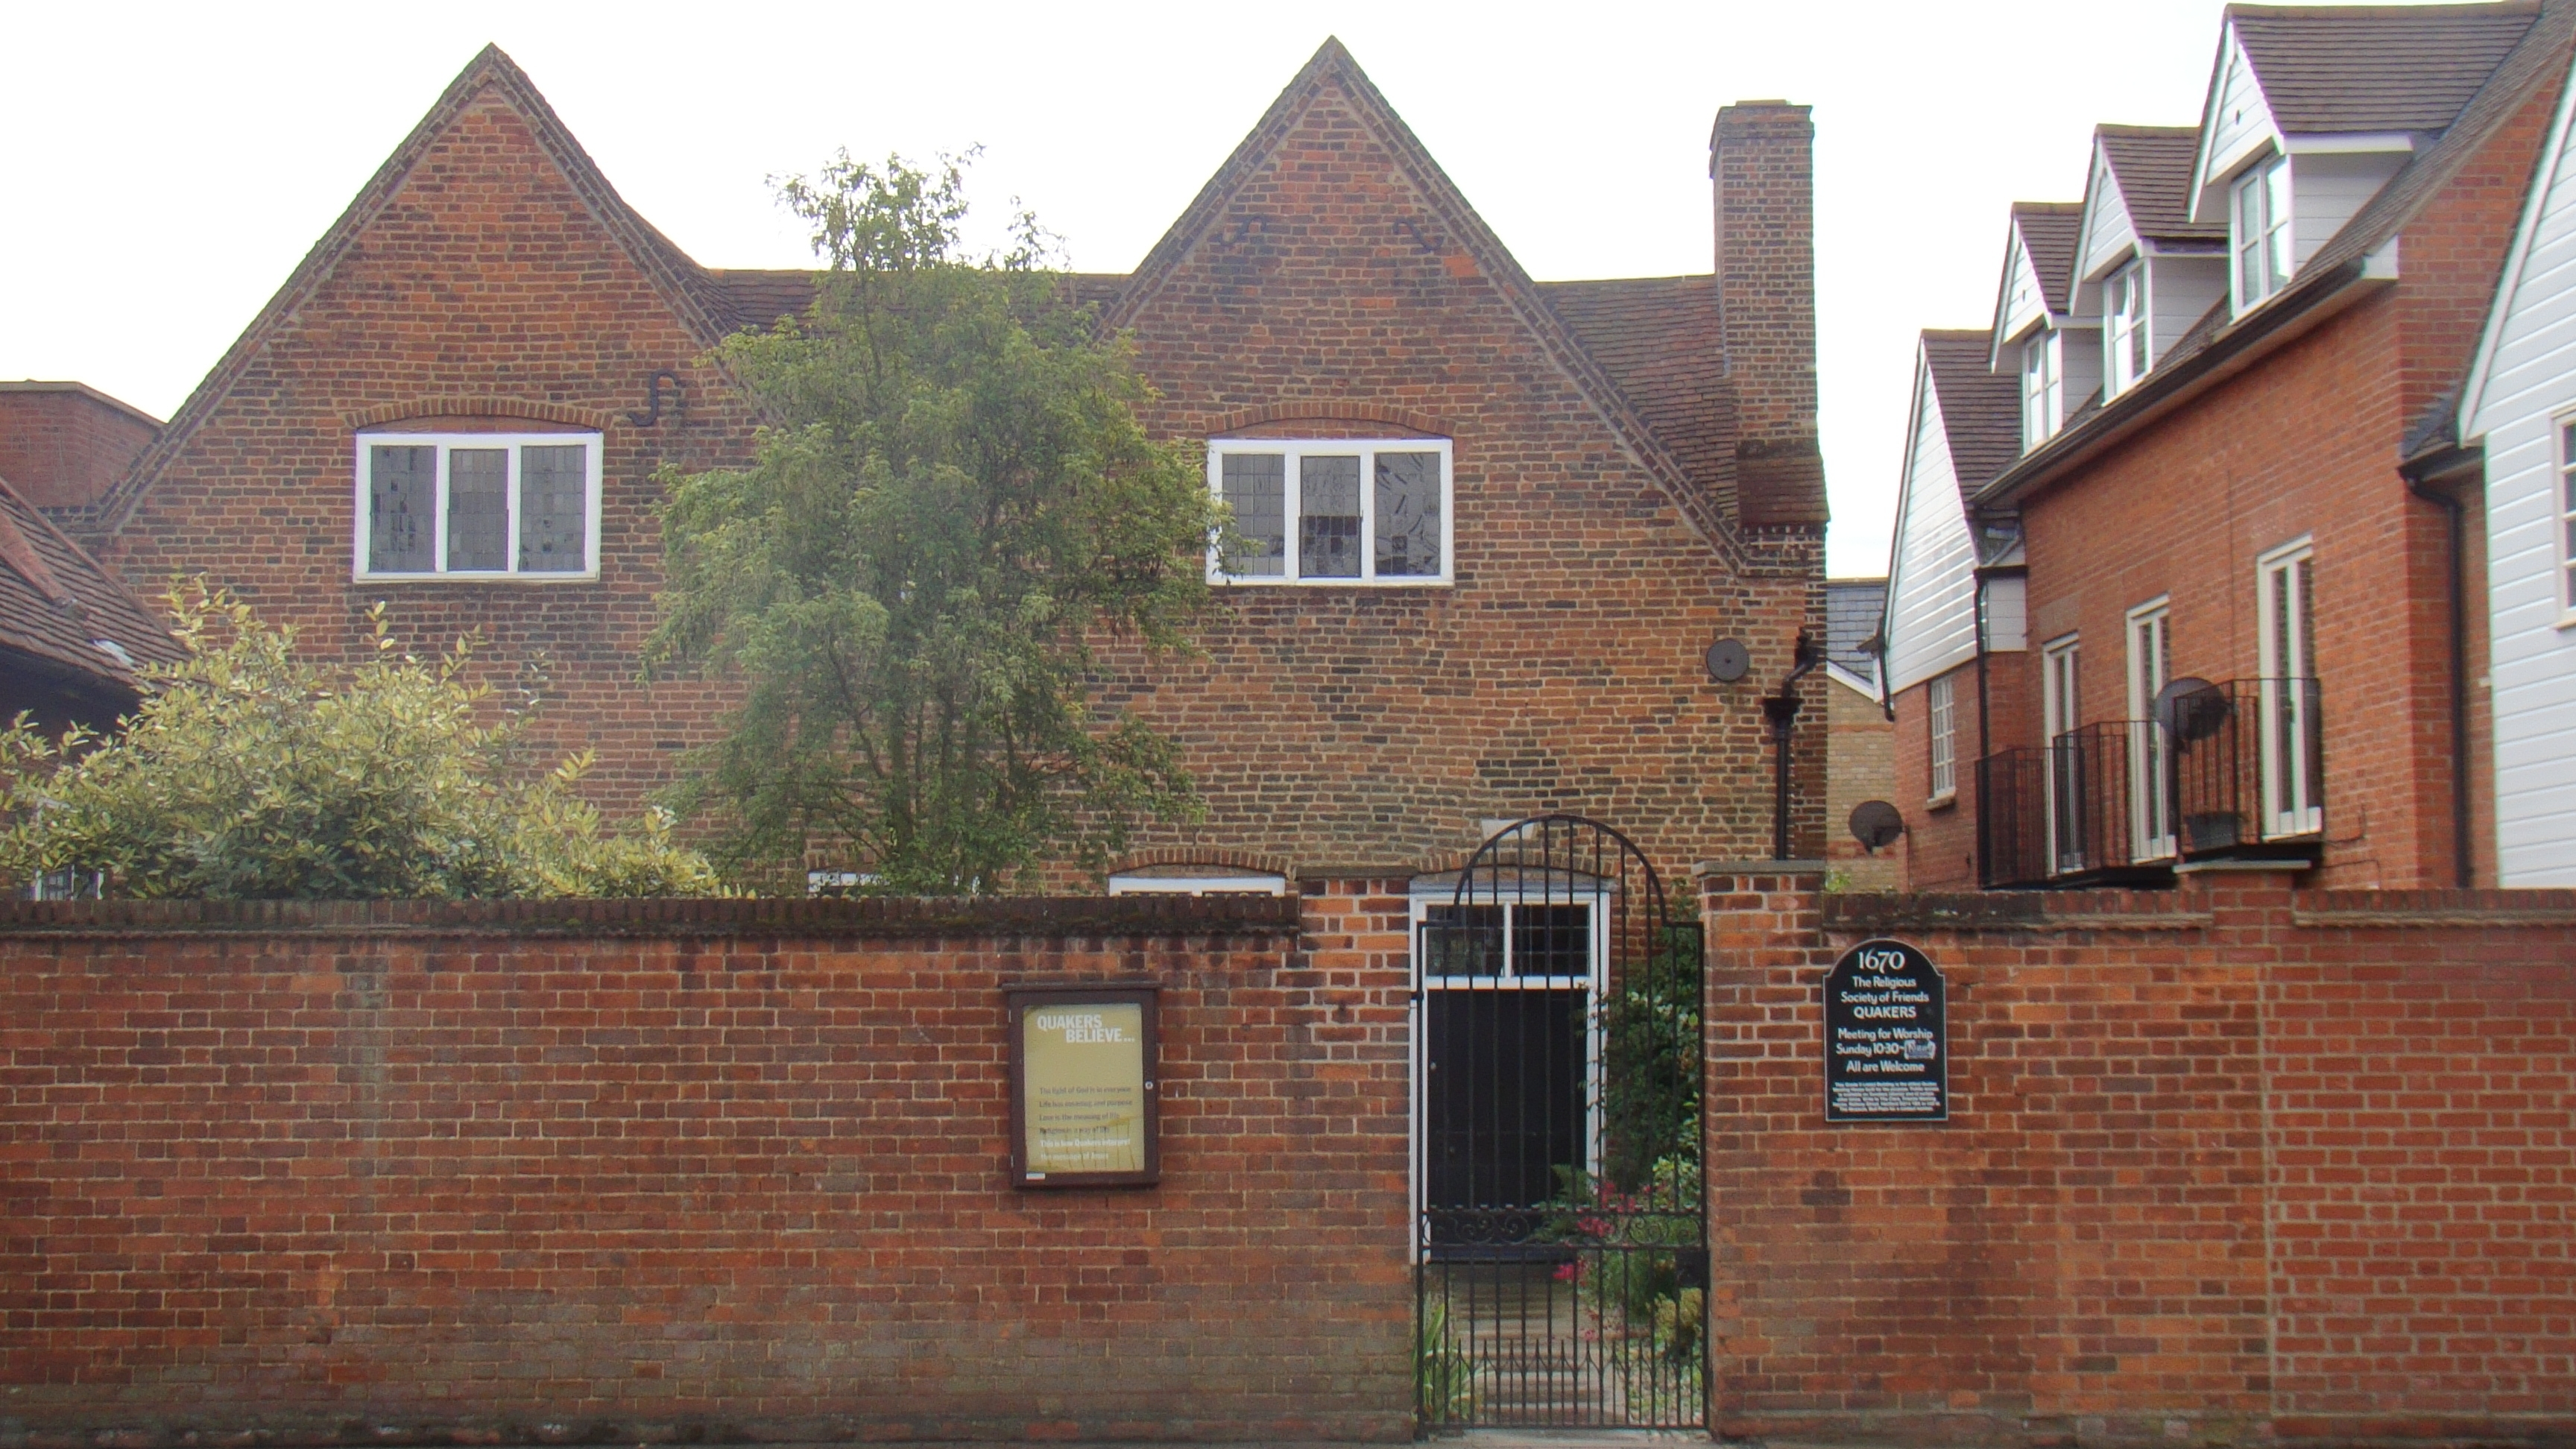 The famous Hertford Meeting House; the oldest of its kind in the world